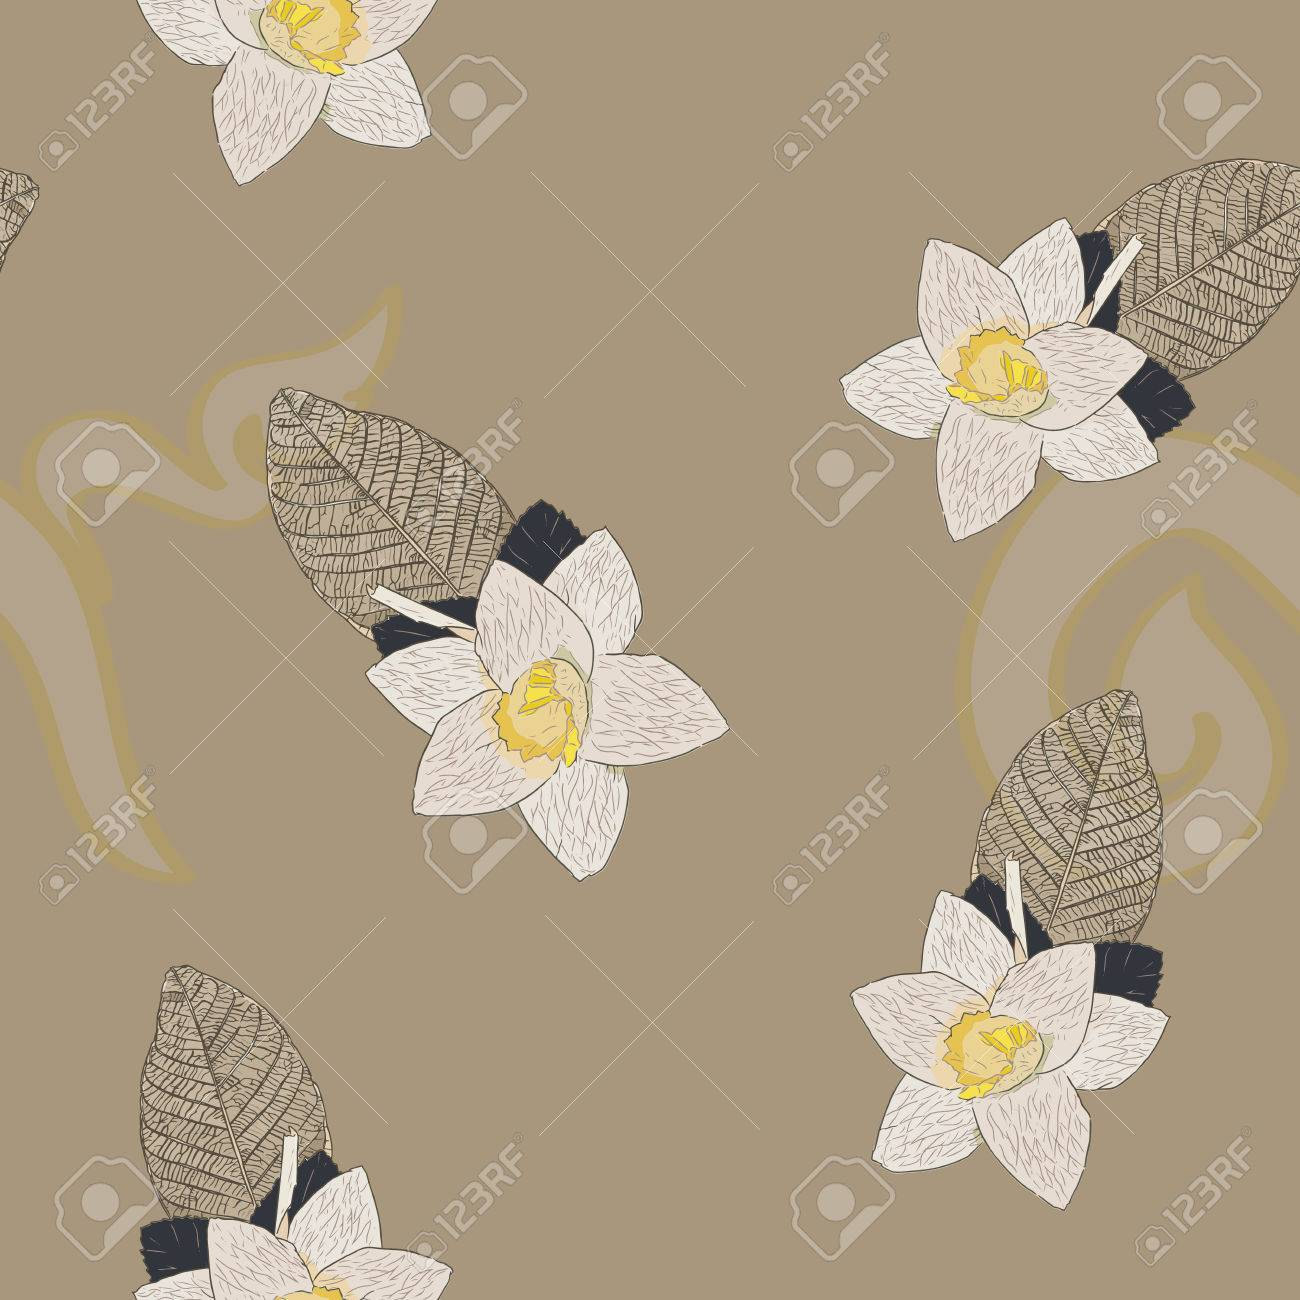 Thai artificial funeral daffodil flower or dok mai chan hand thai artificial funeral daffodil flower or dok mai chan hand draw sketch vector sandalwood izmirmasajfo